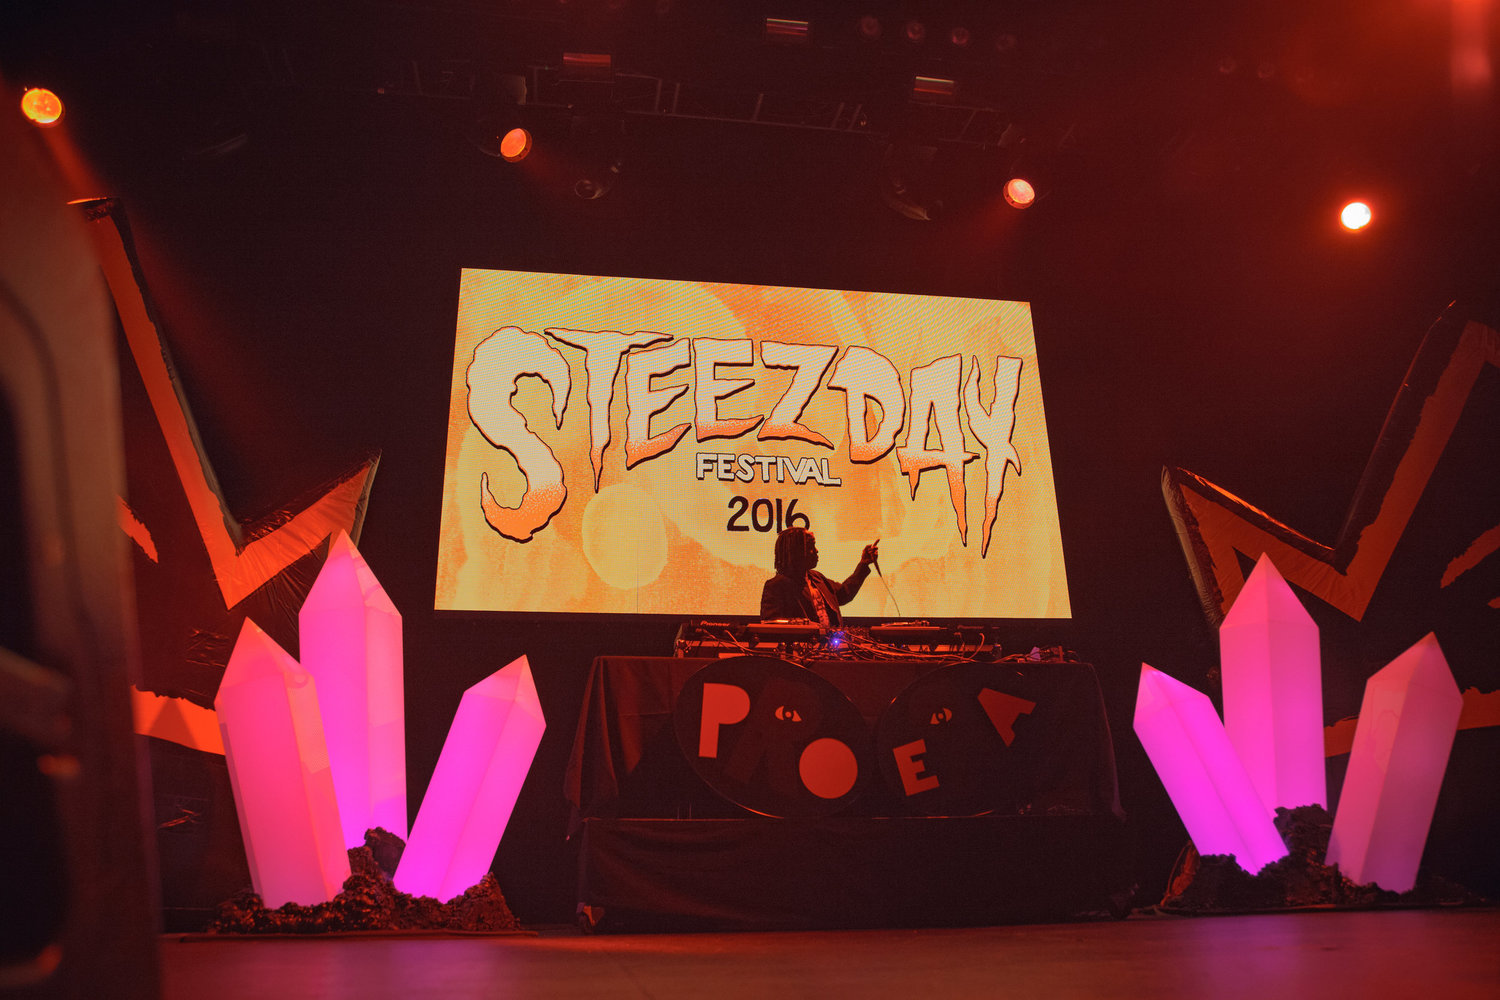 STEEZ DAY -